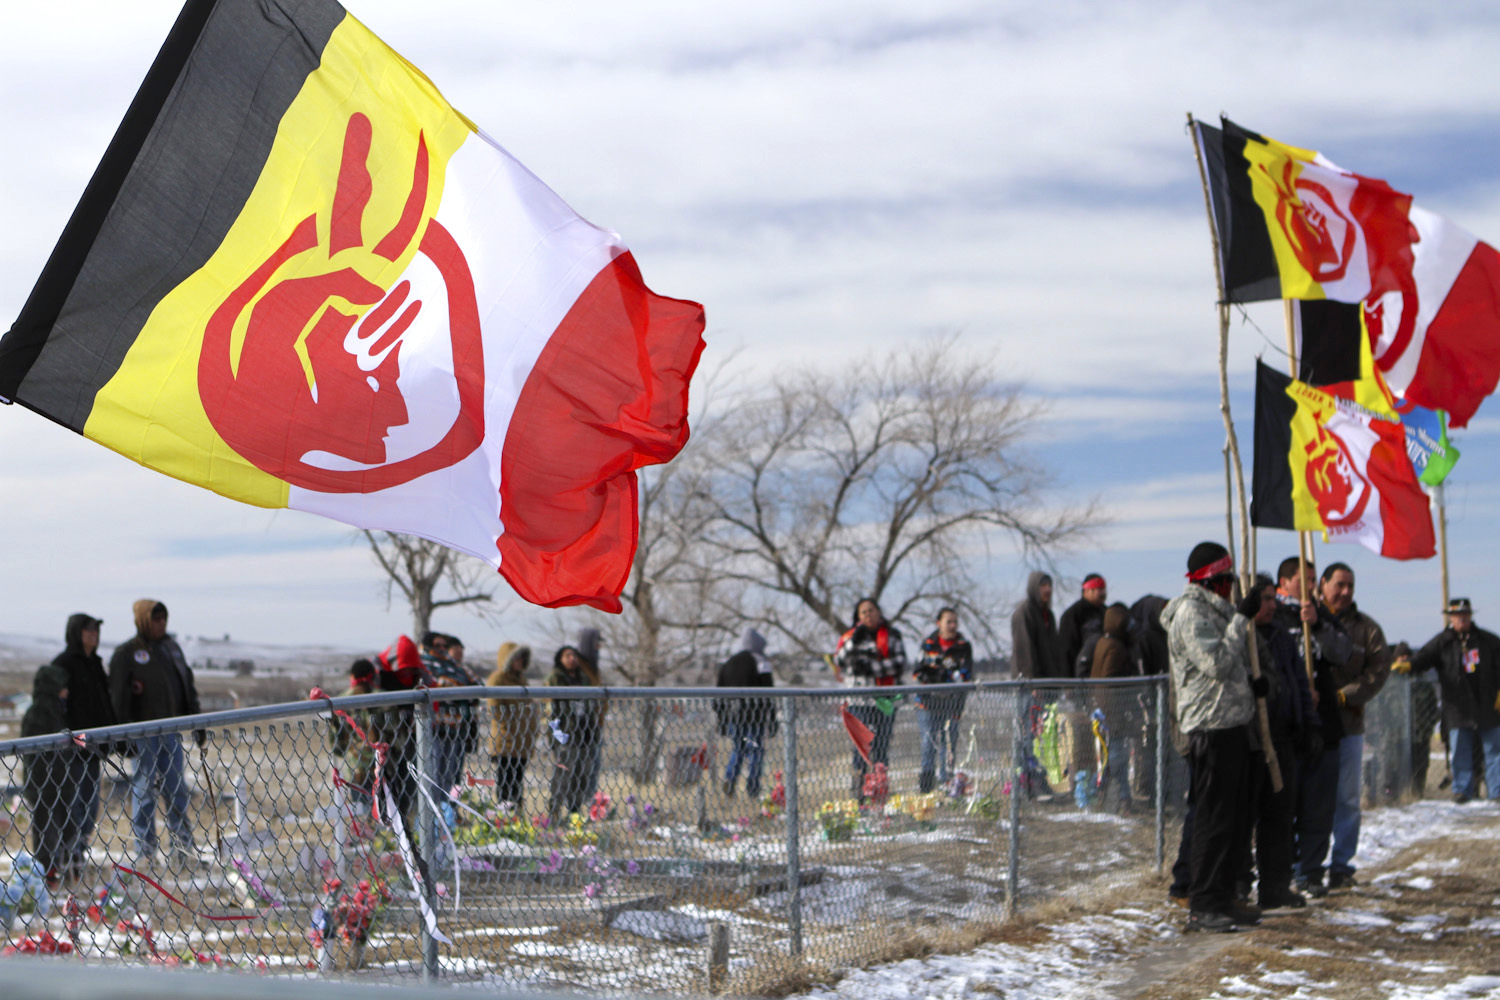 Tim Giago: Wounded Knee was not 'liberated' by AIM activists in 1973